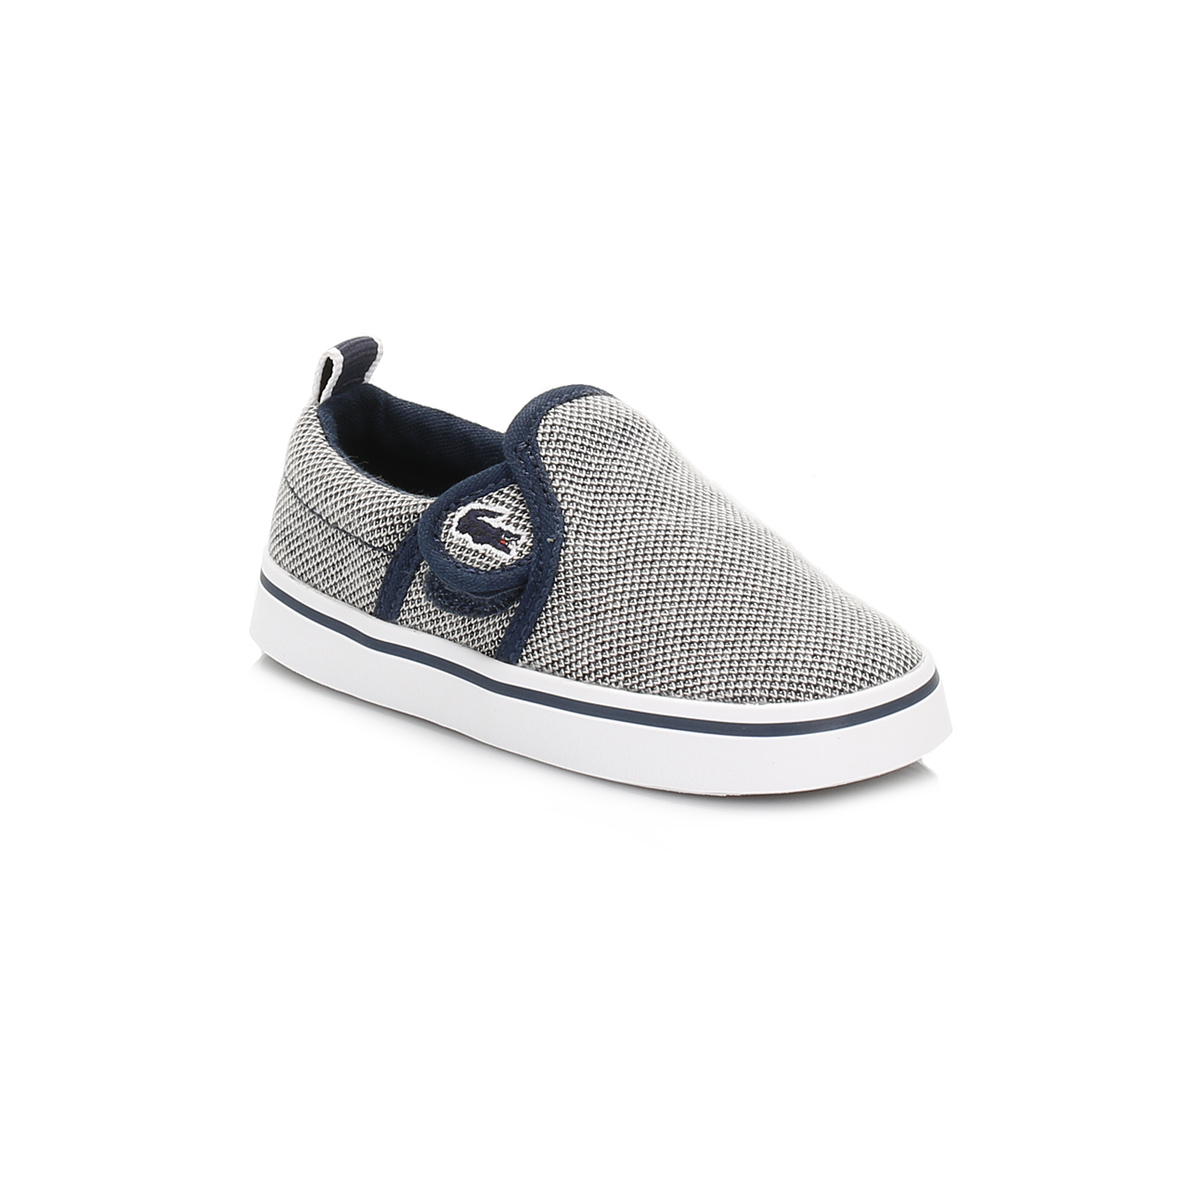 Lacoste Infants Trainers Navy Blue Gazon Slip On Hook & Loop Canvas Sport Shoes